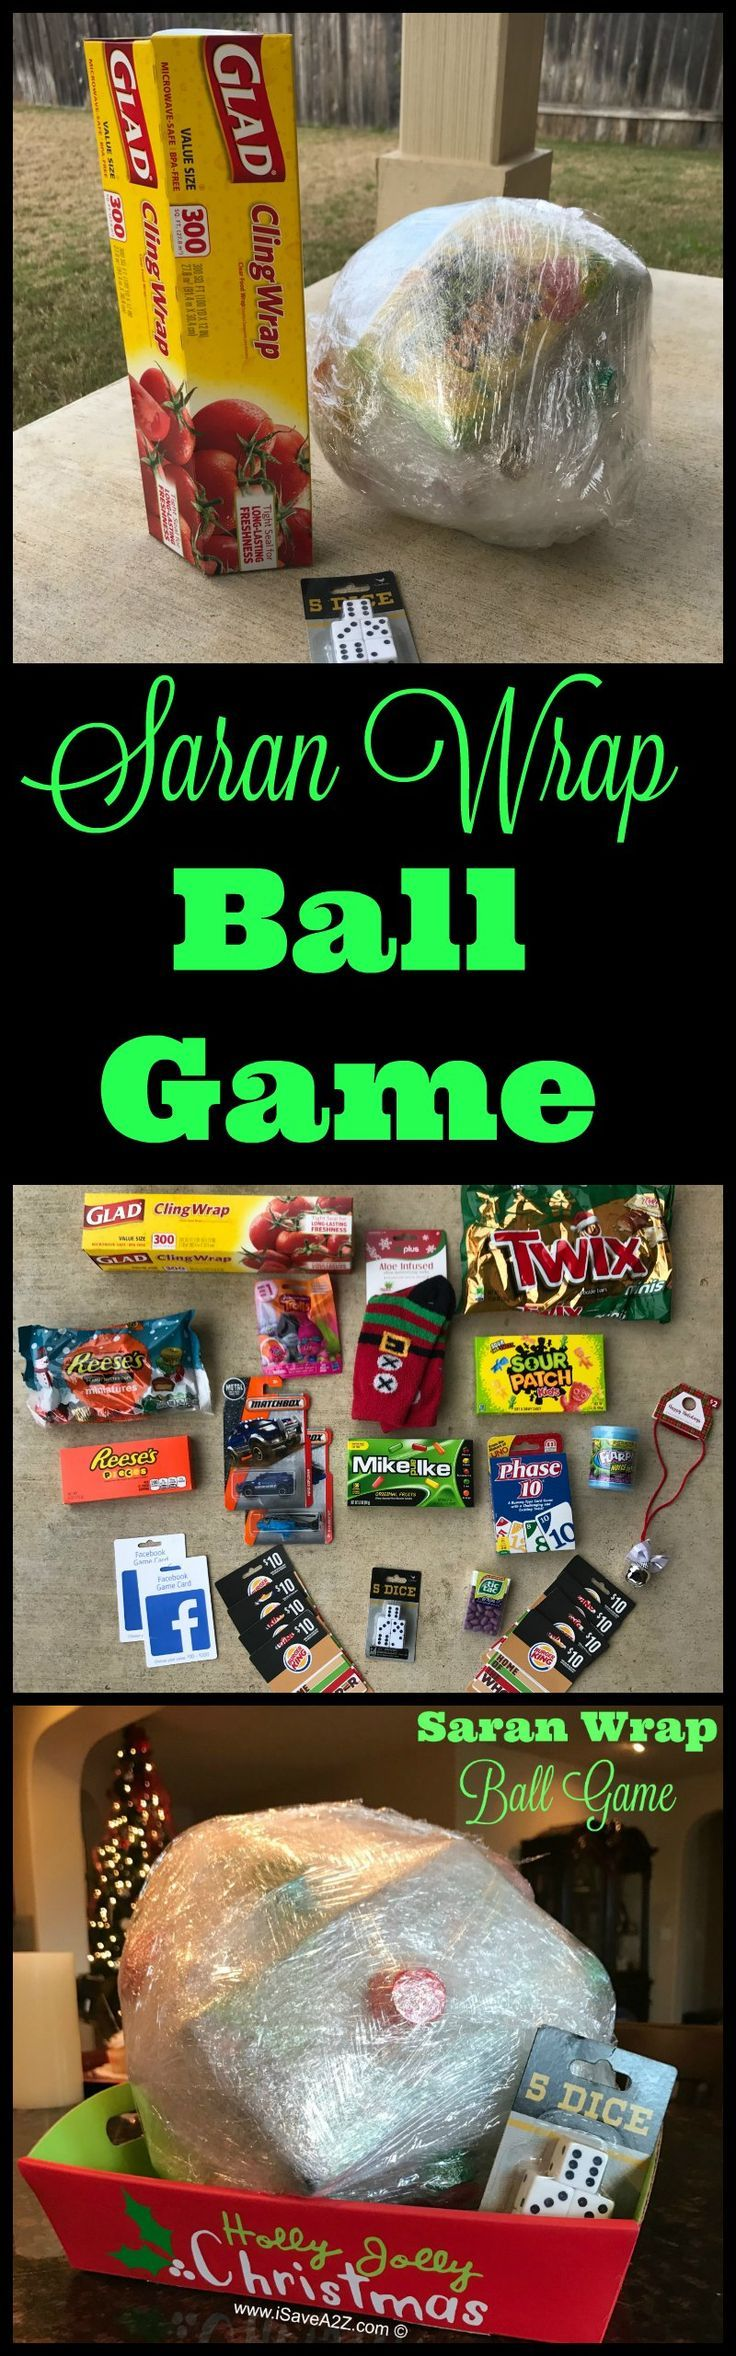 The Saran Wrap Ball Game Rules and Ideas   Gaming, Party games and ...